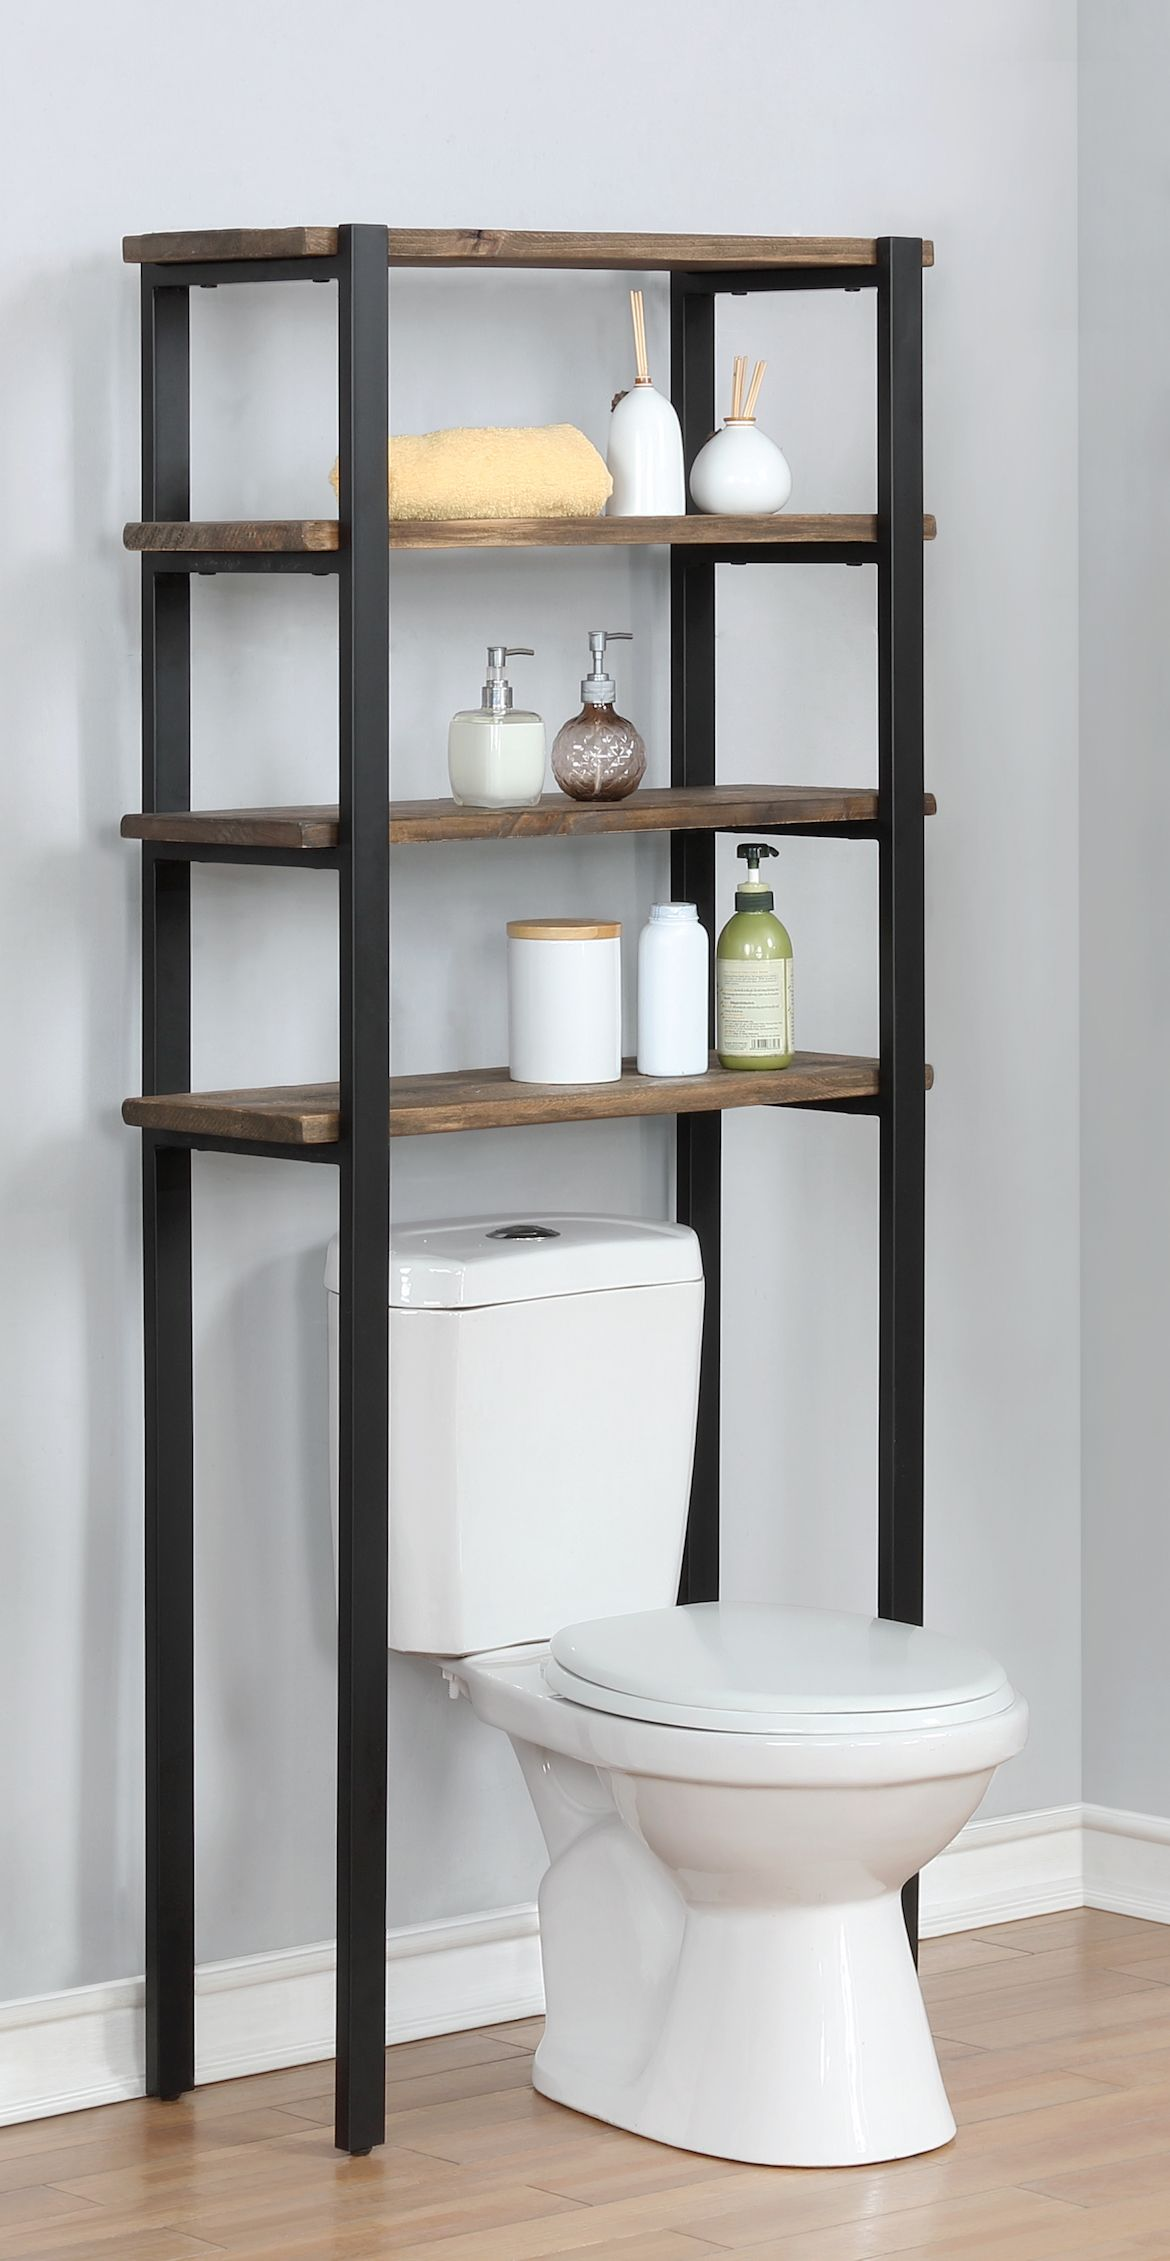 The Pomona 64 Over Toilet Bath Storage Has A Rustic Modern Style It Is Very Handy In The Bathroom Set Toilet Storage Bathroom Decor Bathroom Storage Shelves